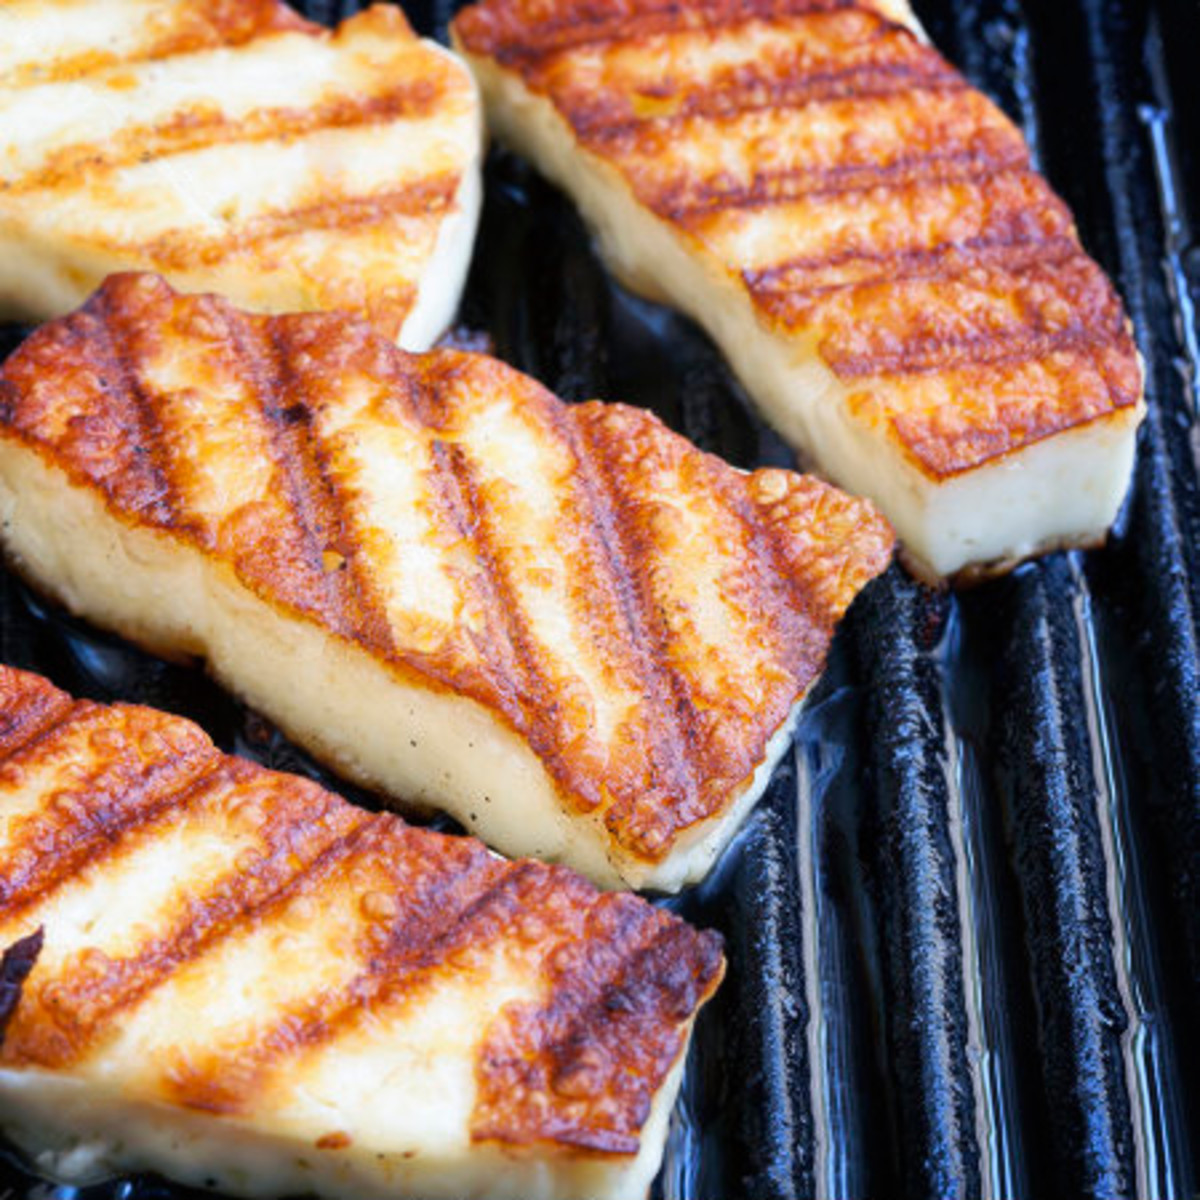 Searing halloumi cheese in a grill pan. Halloumi is a good choice for this type of frying, as it has a thicker texture, making it less likely to melt.